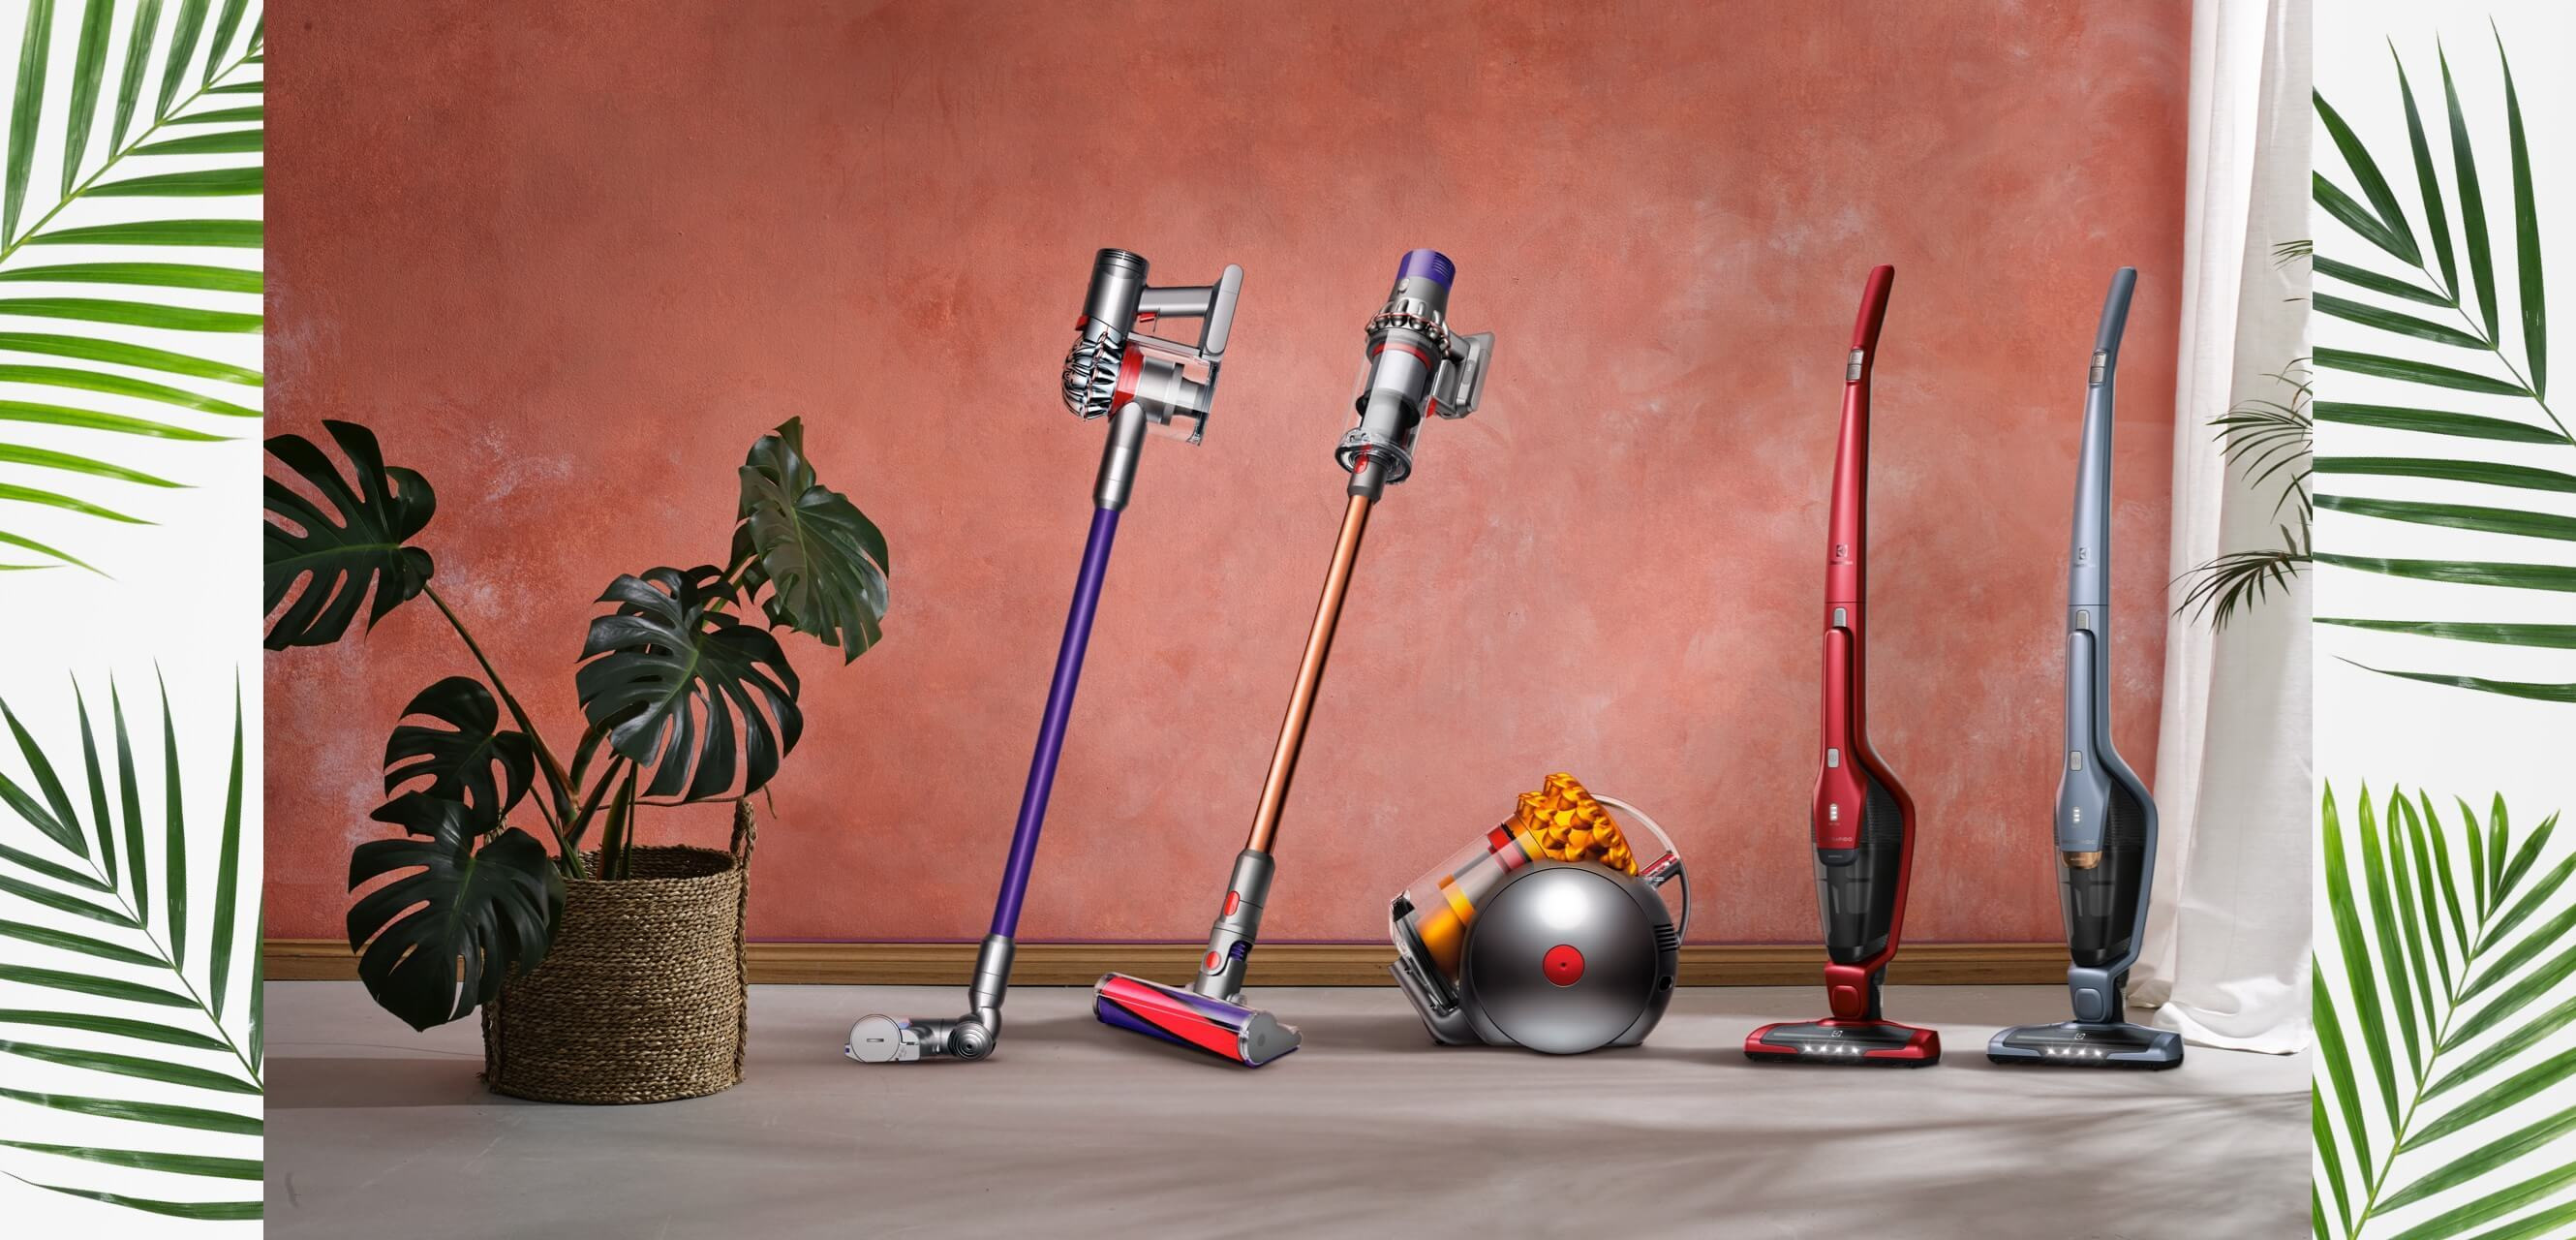 Line-up of cordless vacuum cleaners